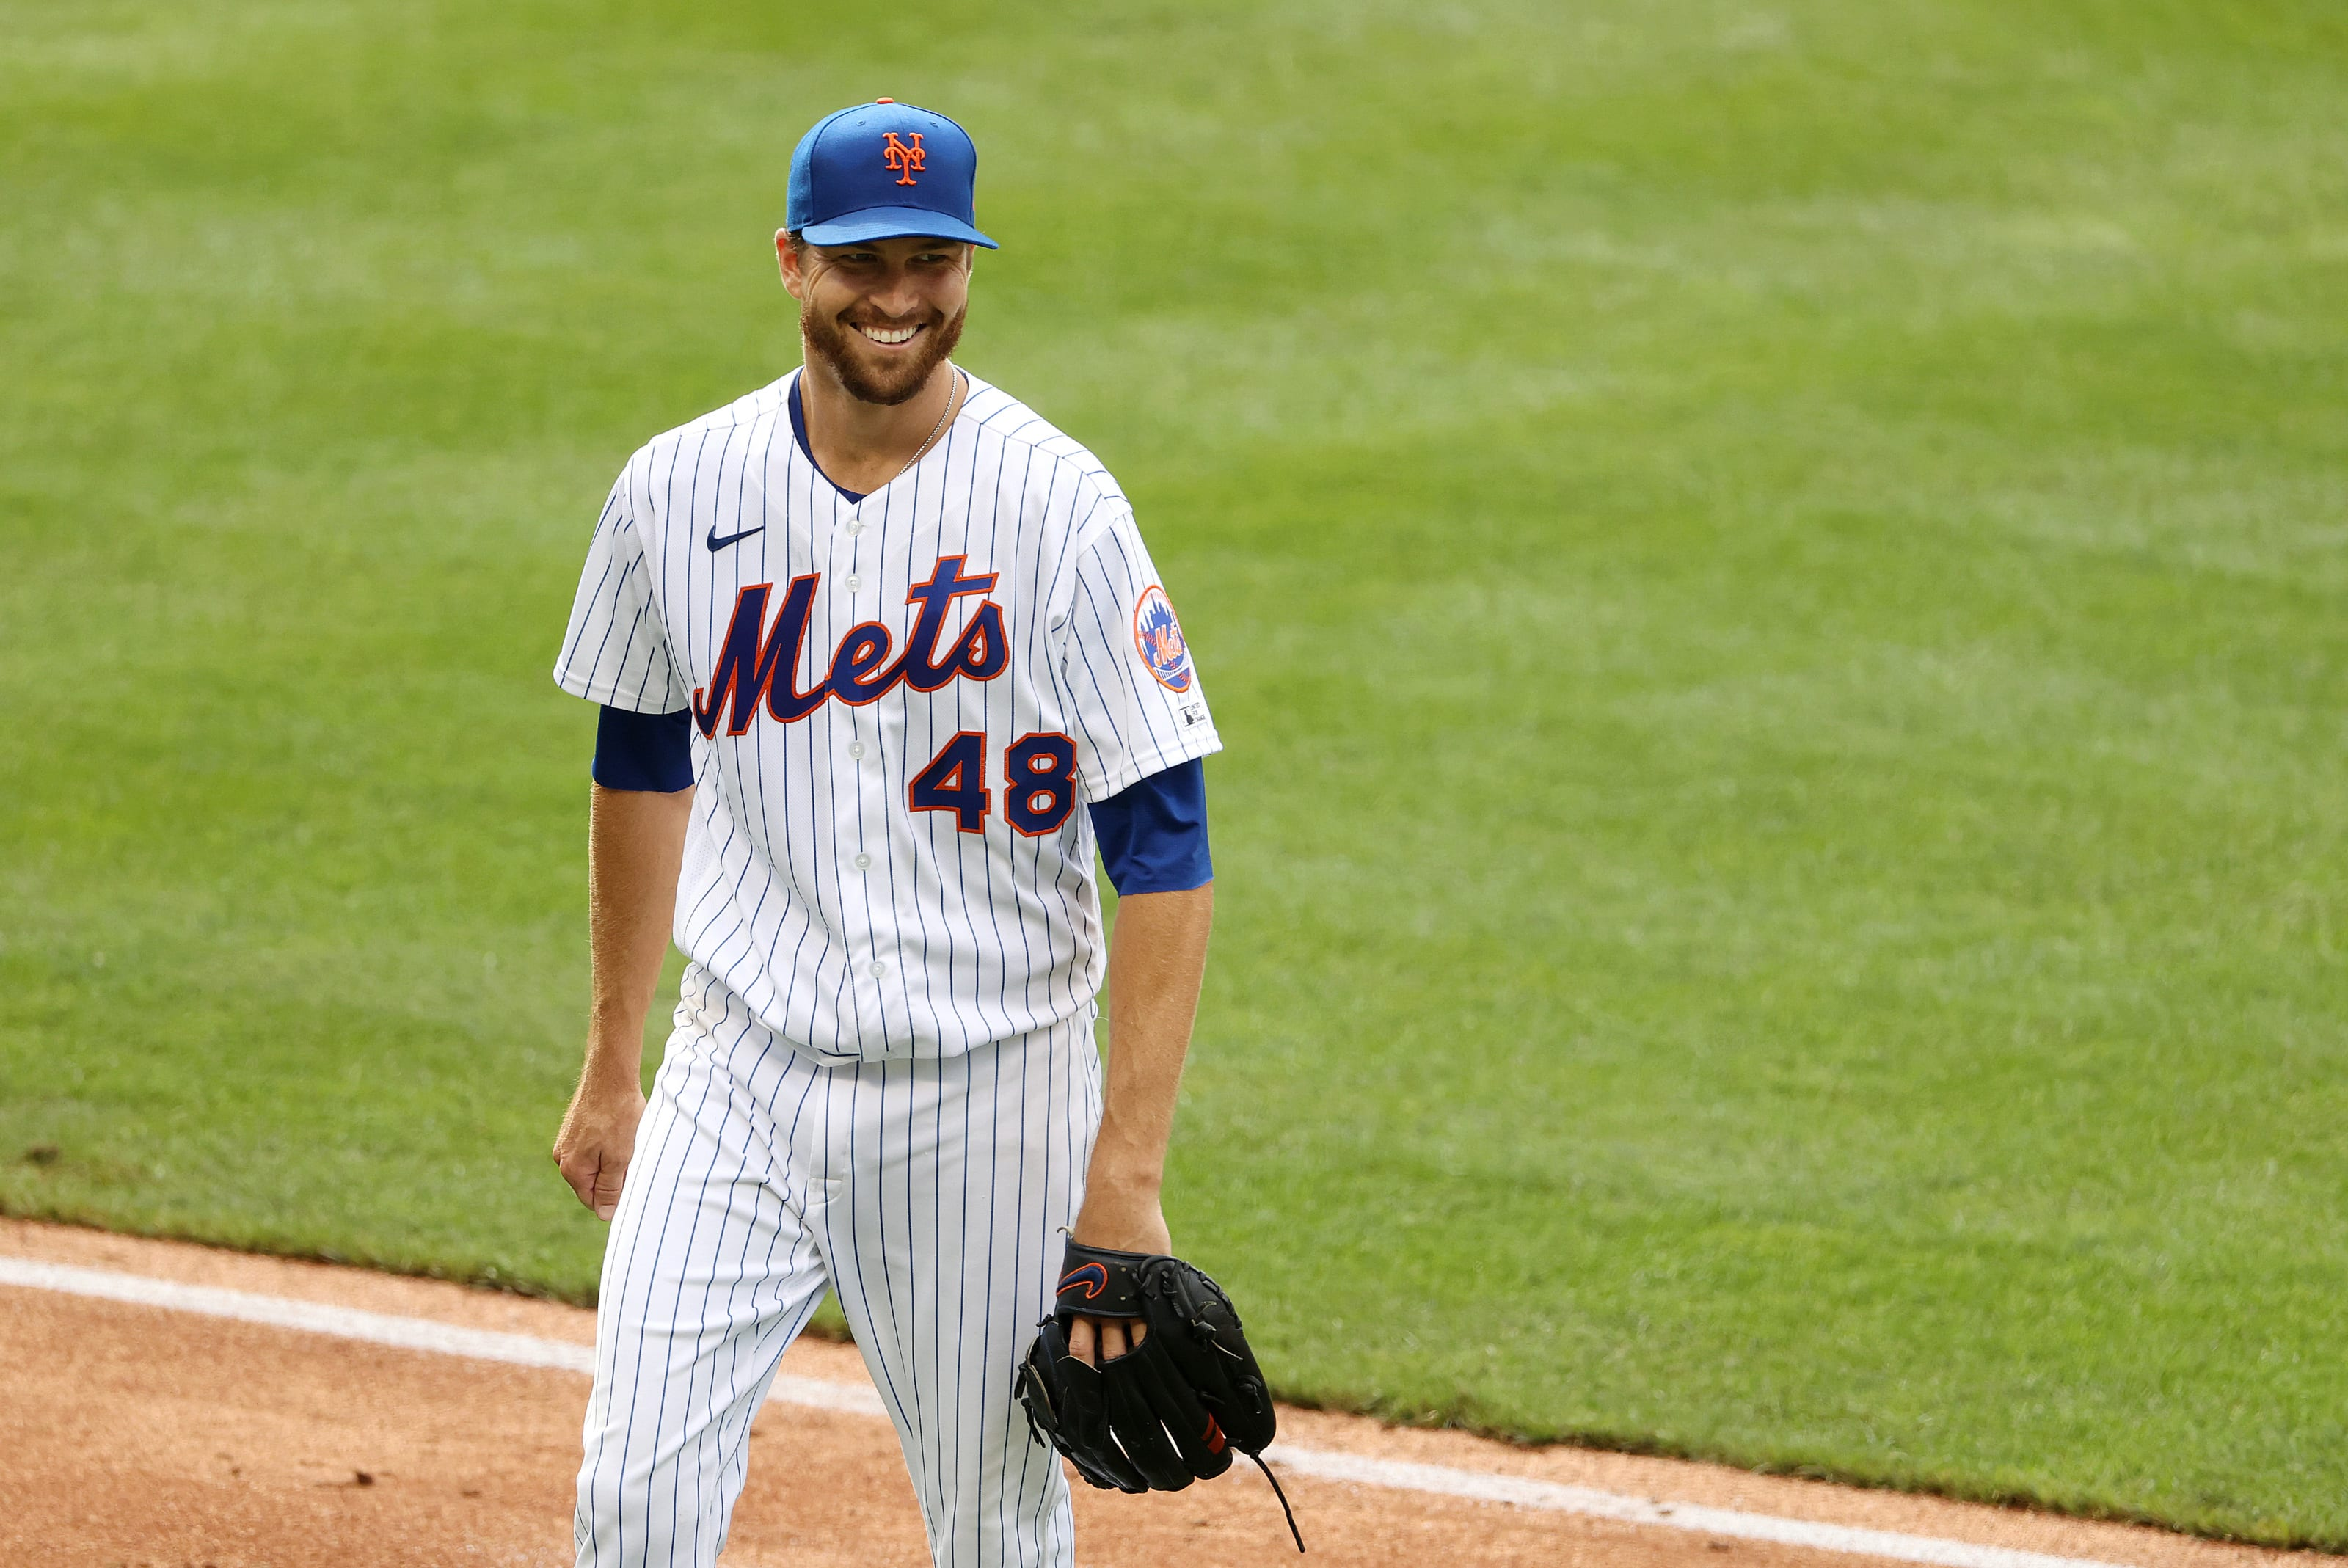 NY Mets ace Jacob deGrom's Cy Young competitors for 2021